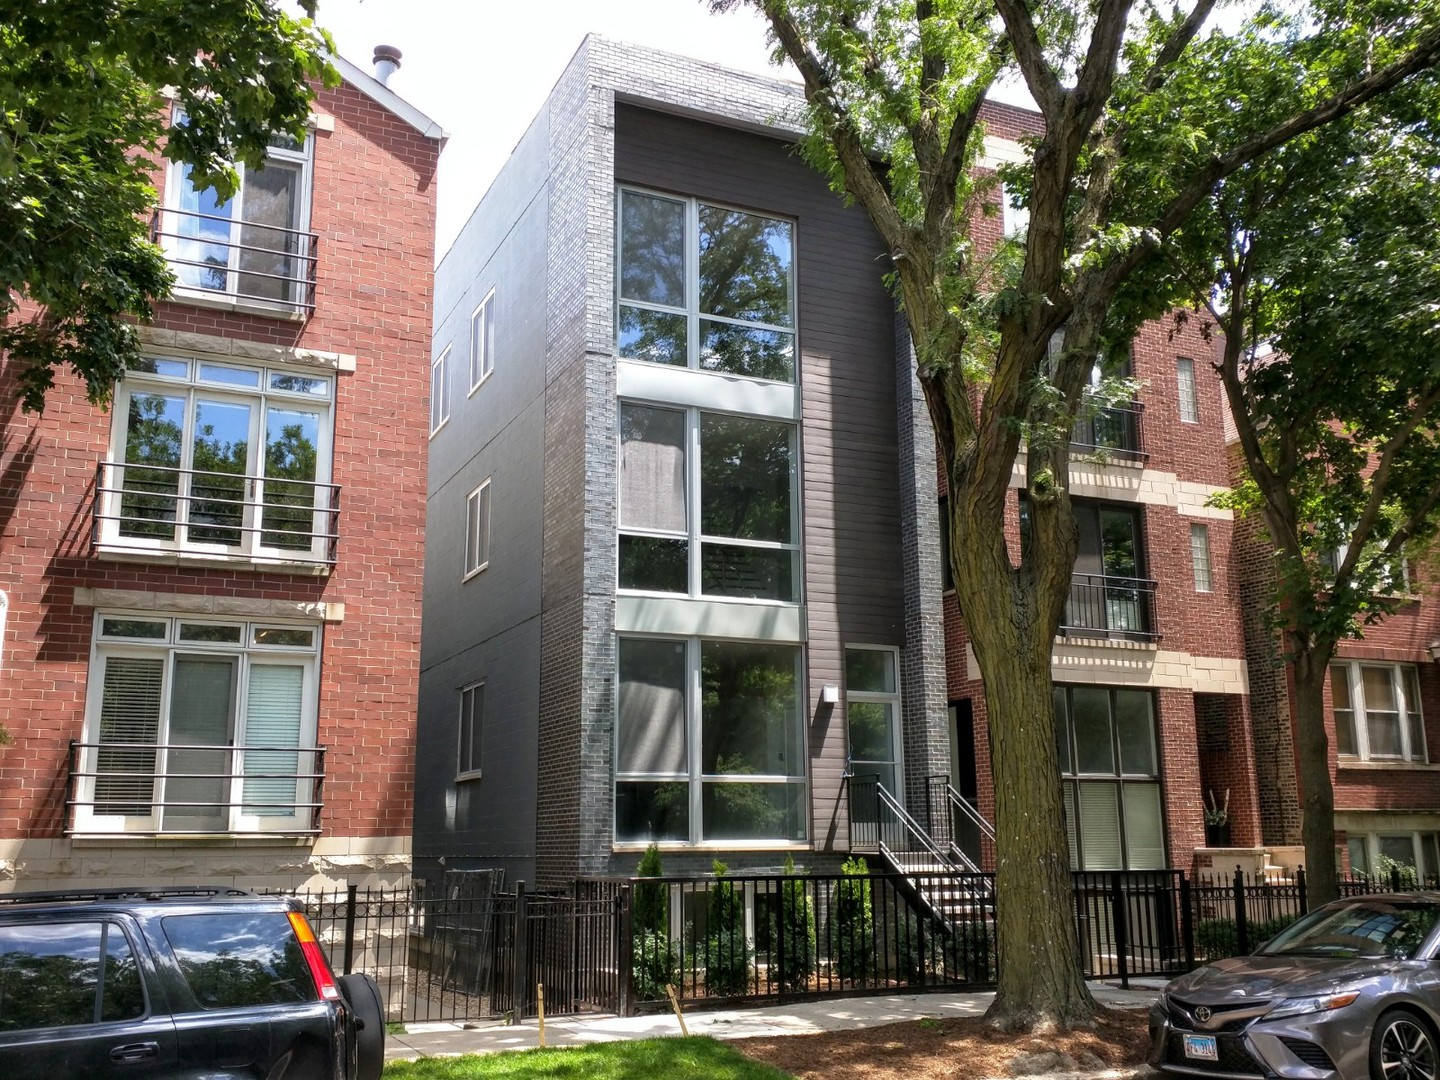 One of Logan Square 4 Bedroom Homes for Sale at 2331 North Leavitt Street